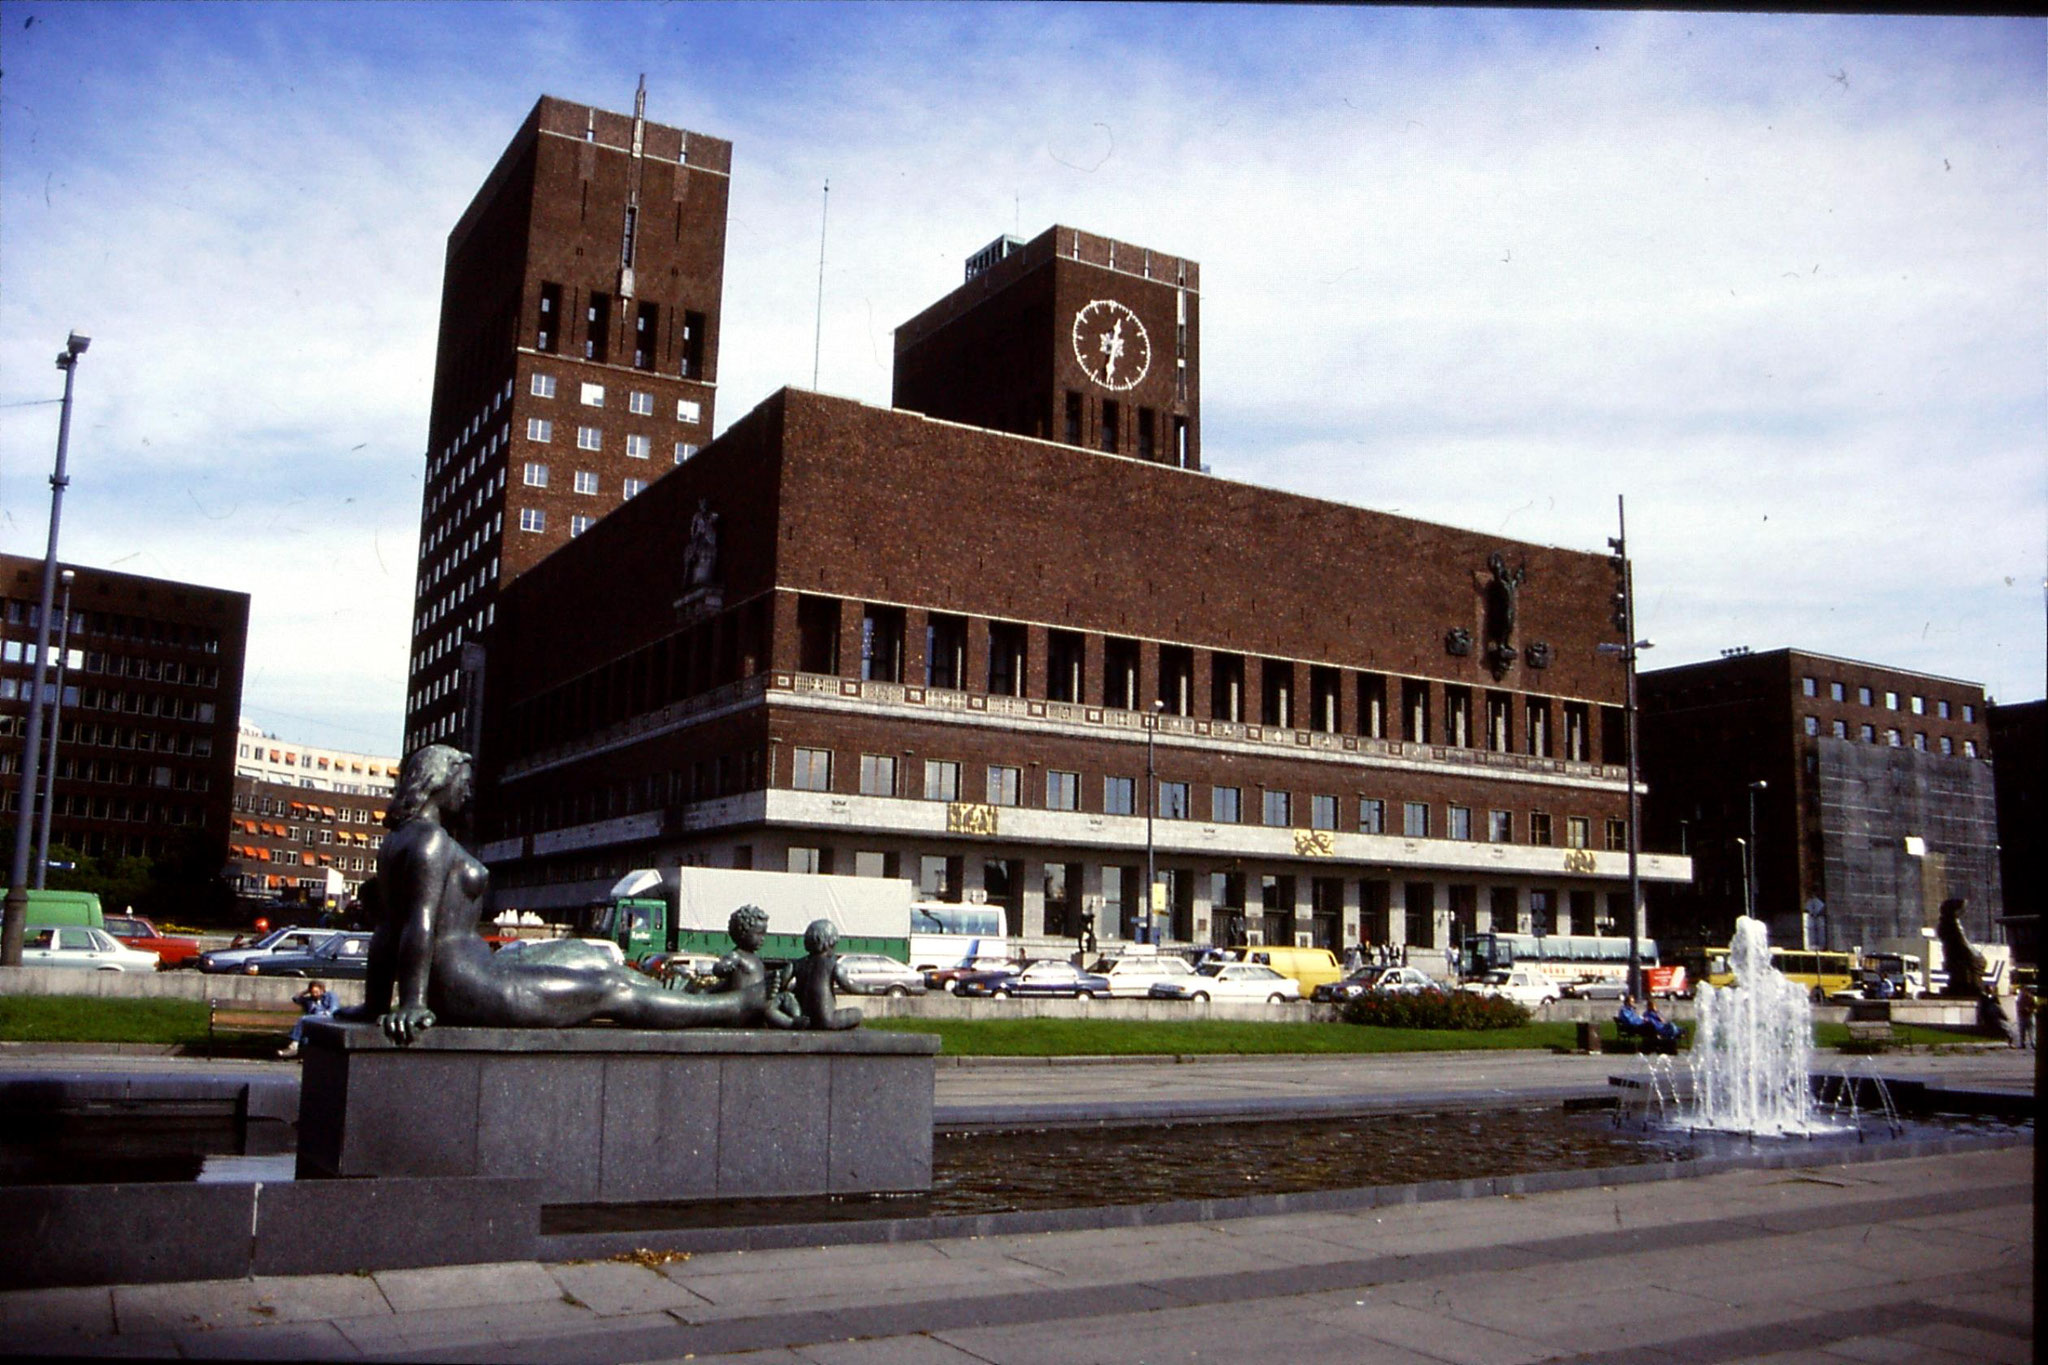 16/9/1988: 8: Oslo City Hall